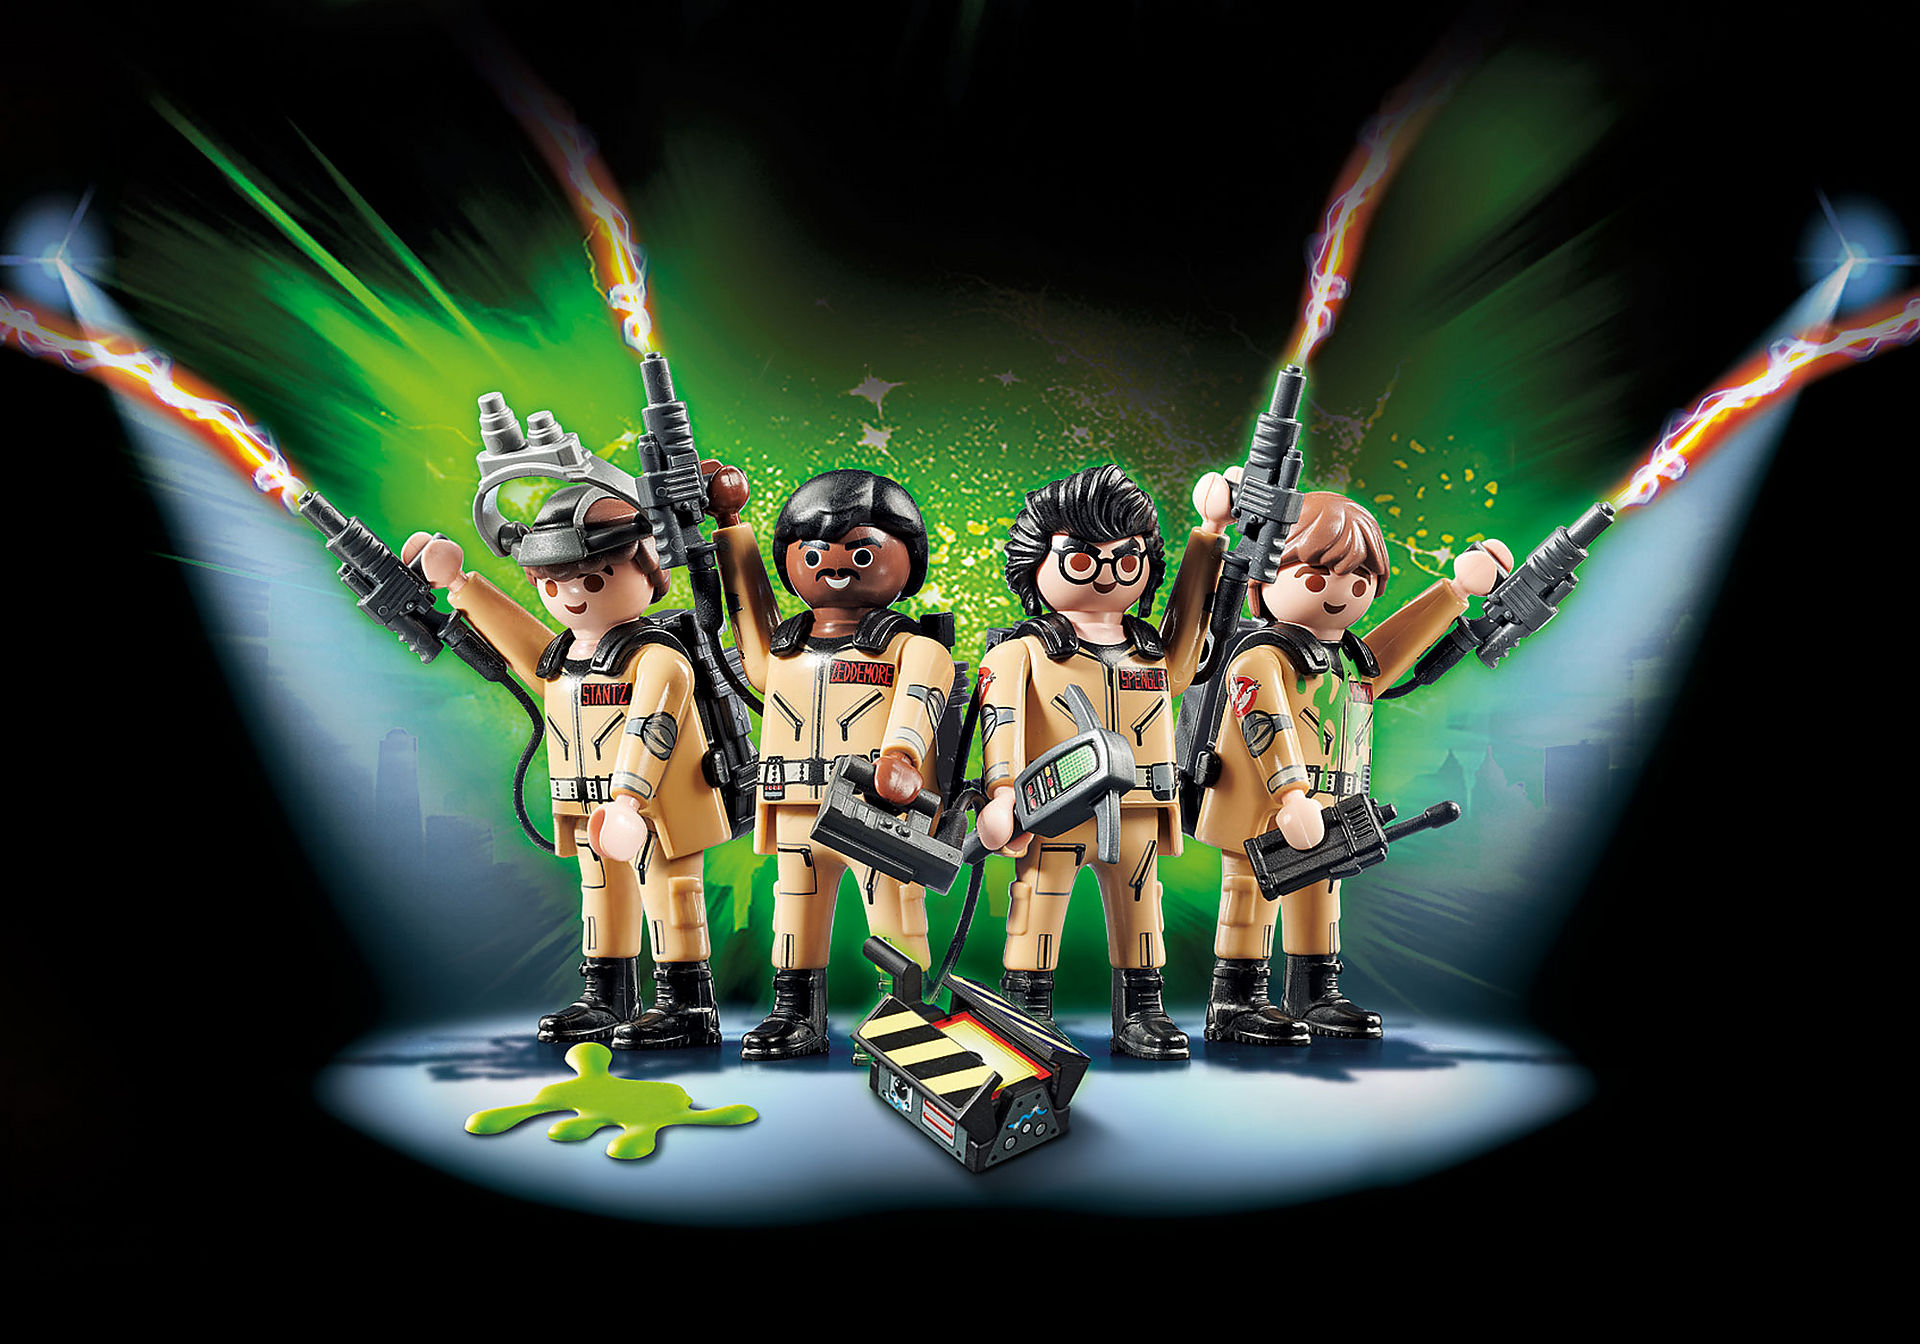 http://media.playmobil.com/i/playmobil/70175_product_detail/Ghostbusters™ Figures Set Ghostbusters™